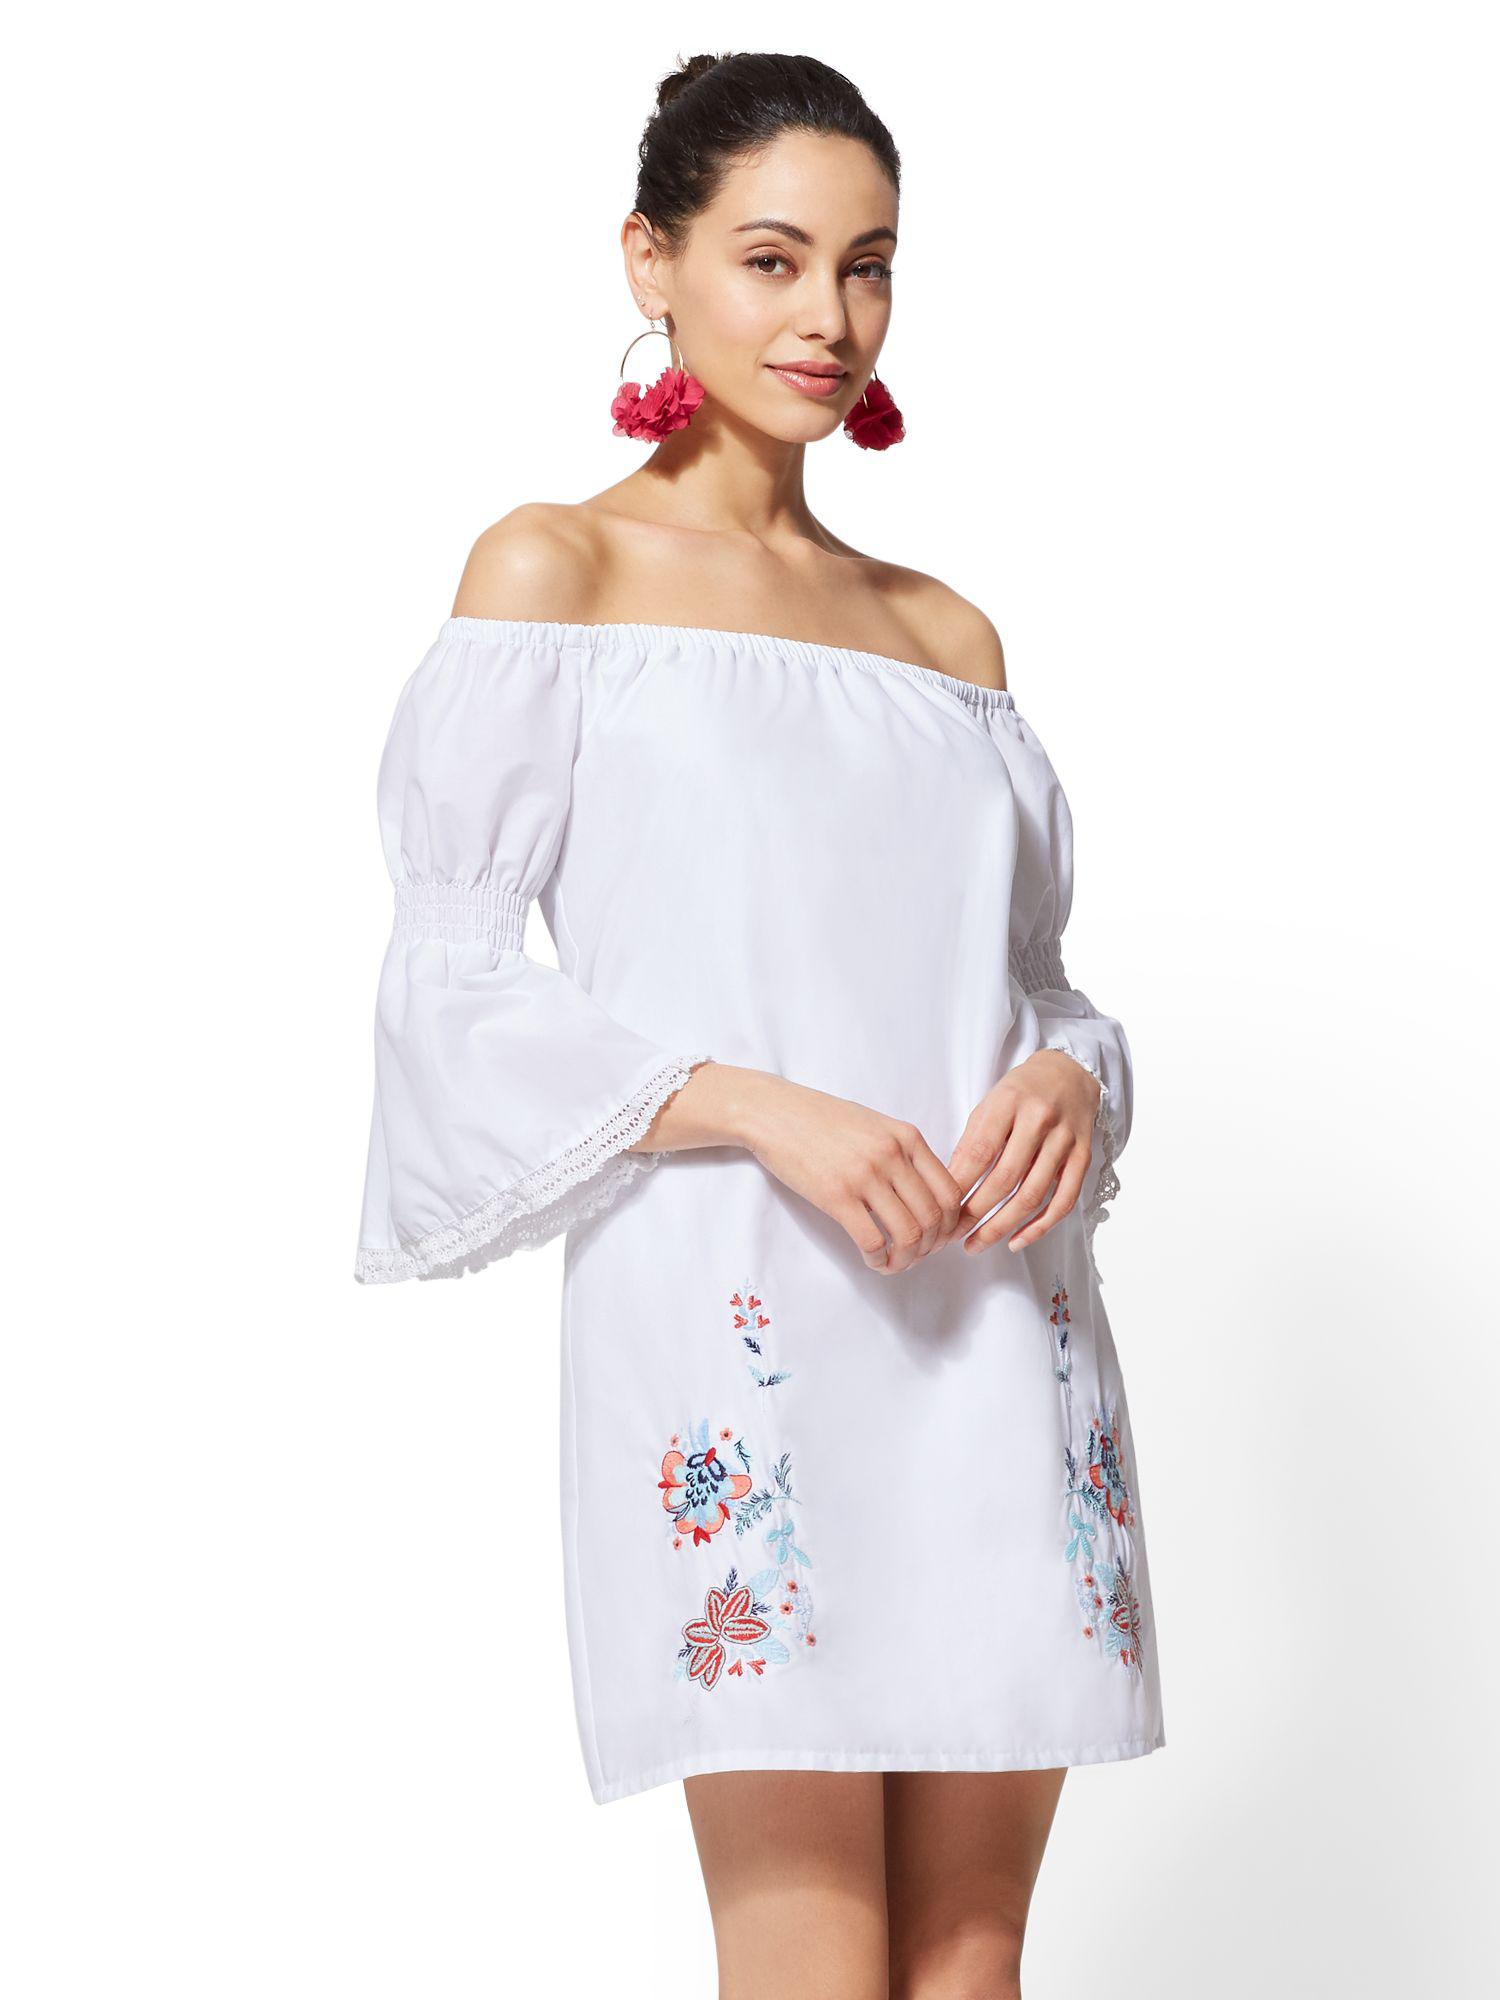 0adfc7ad0b4f Gallery. Previously sold at  New York   Company · Women s Off The Shoulder  Dresses ...